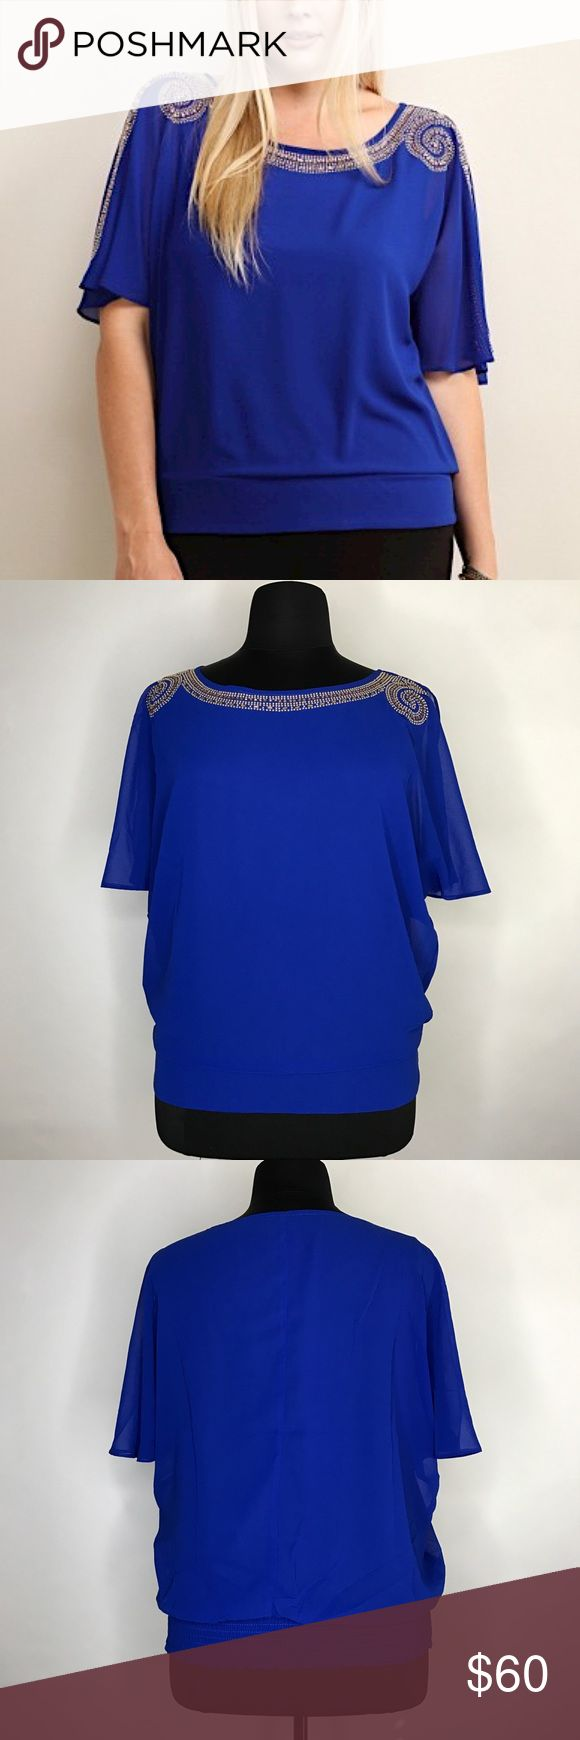 Plus Size Holiday Top Holiday blues take on a whole new meaning with this top. Royal blue loose fit top with detailed embellishment at neckline and shoulder. Sheer split sleeves that flutter ever so, and a banded hem. Romance for all your holiday occasions! Soie Blu Tops